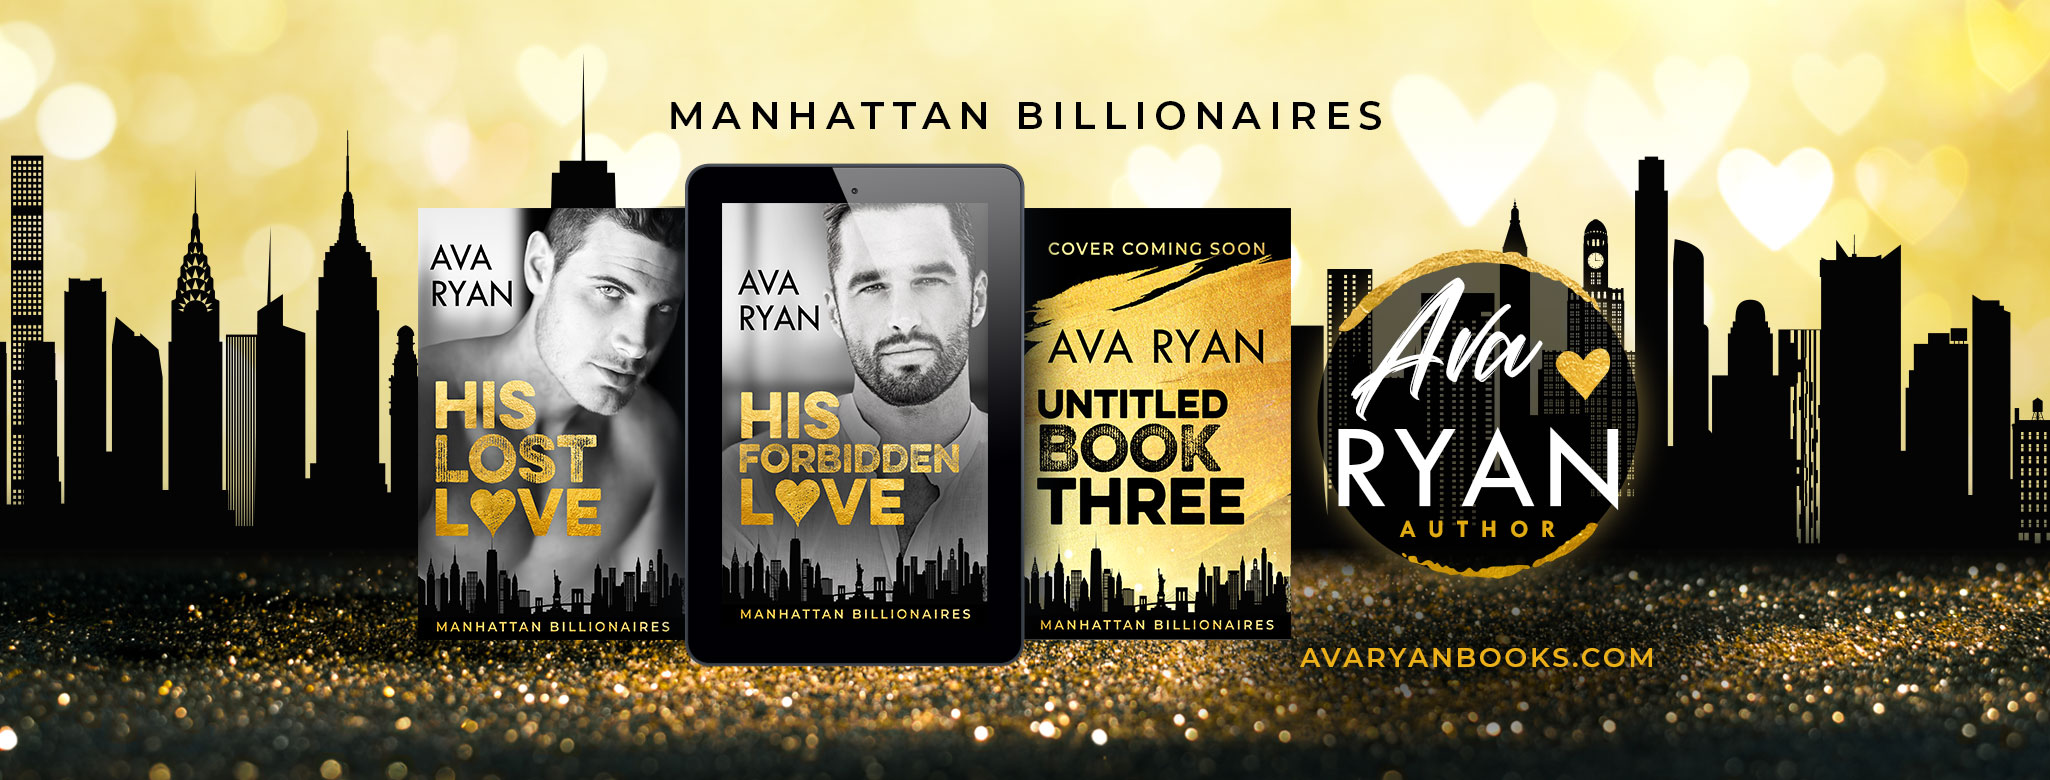 Manhattan Billionaires